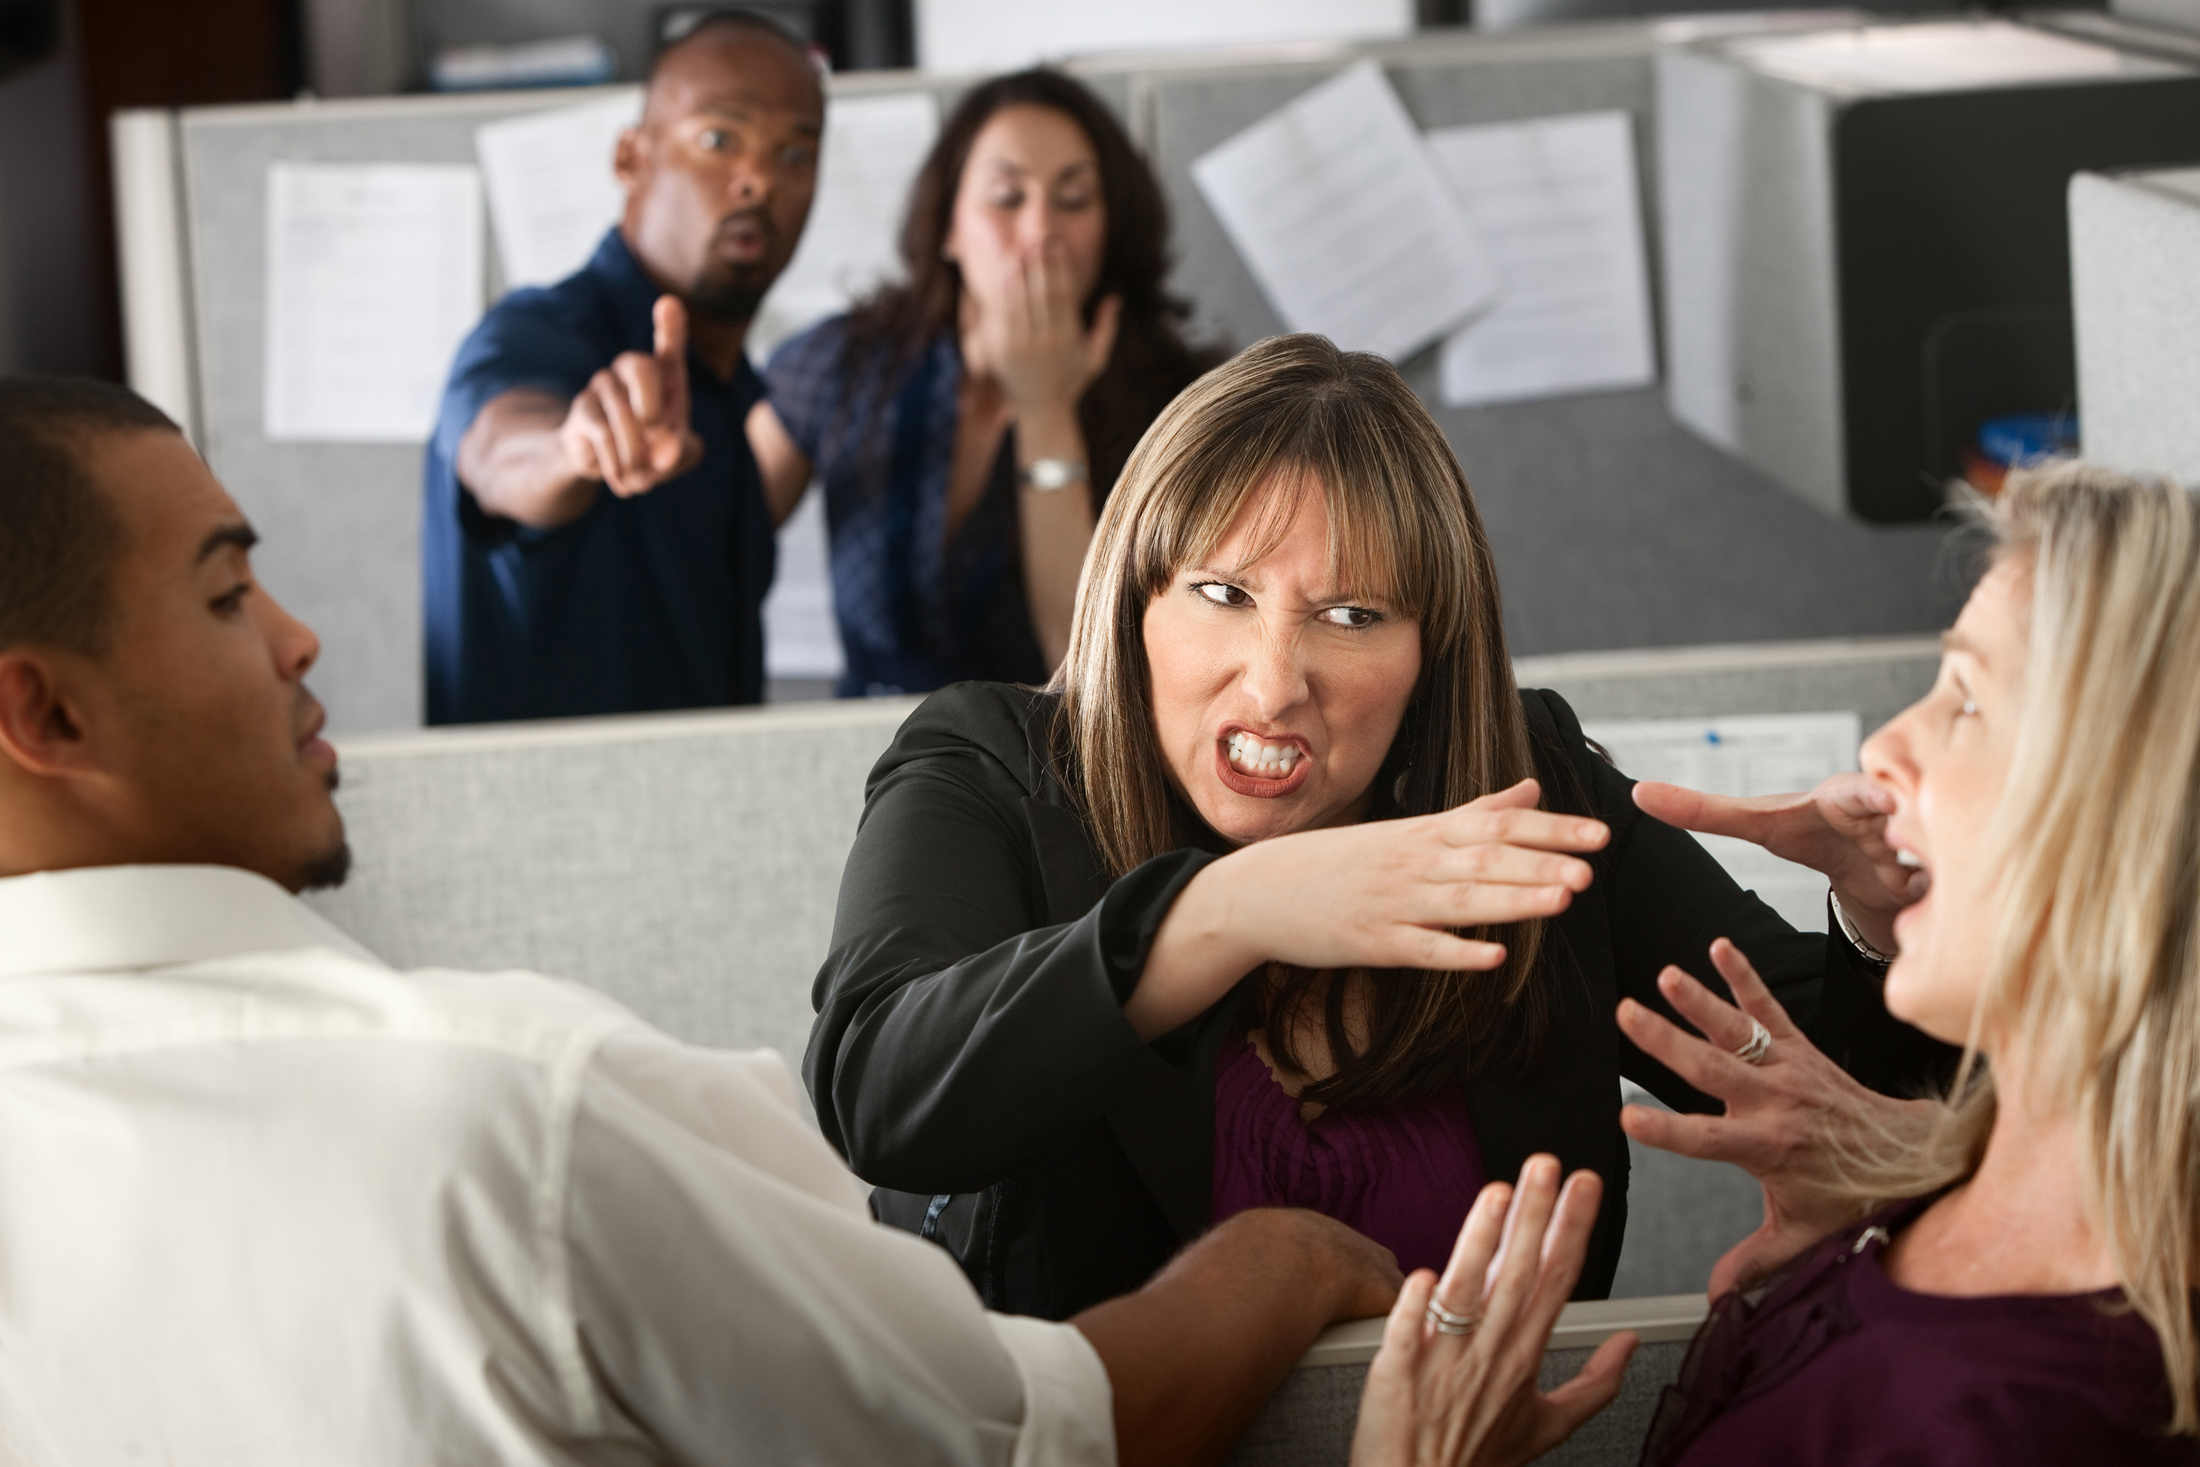 workplace violence warning sign stock photo